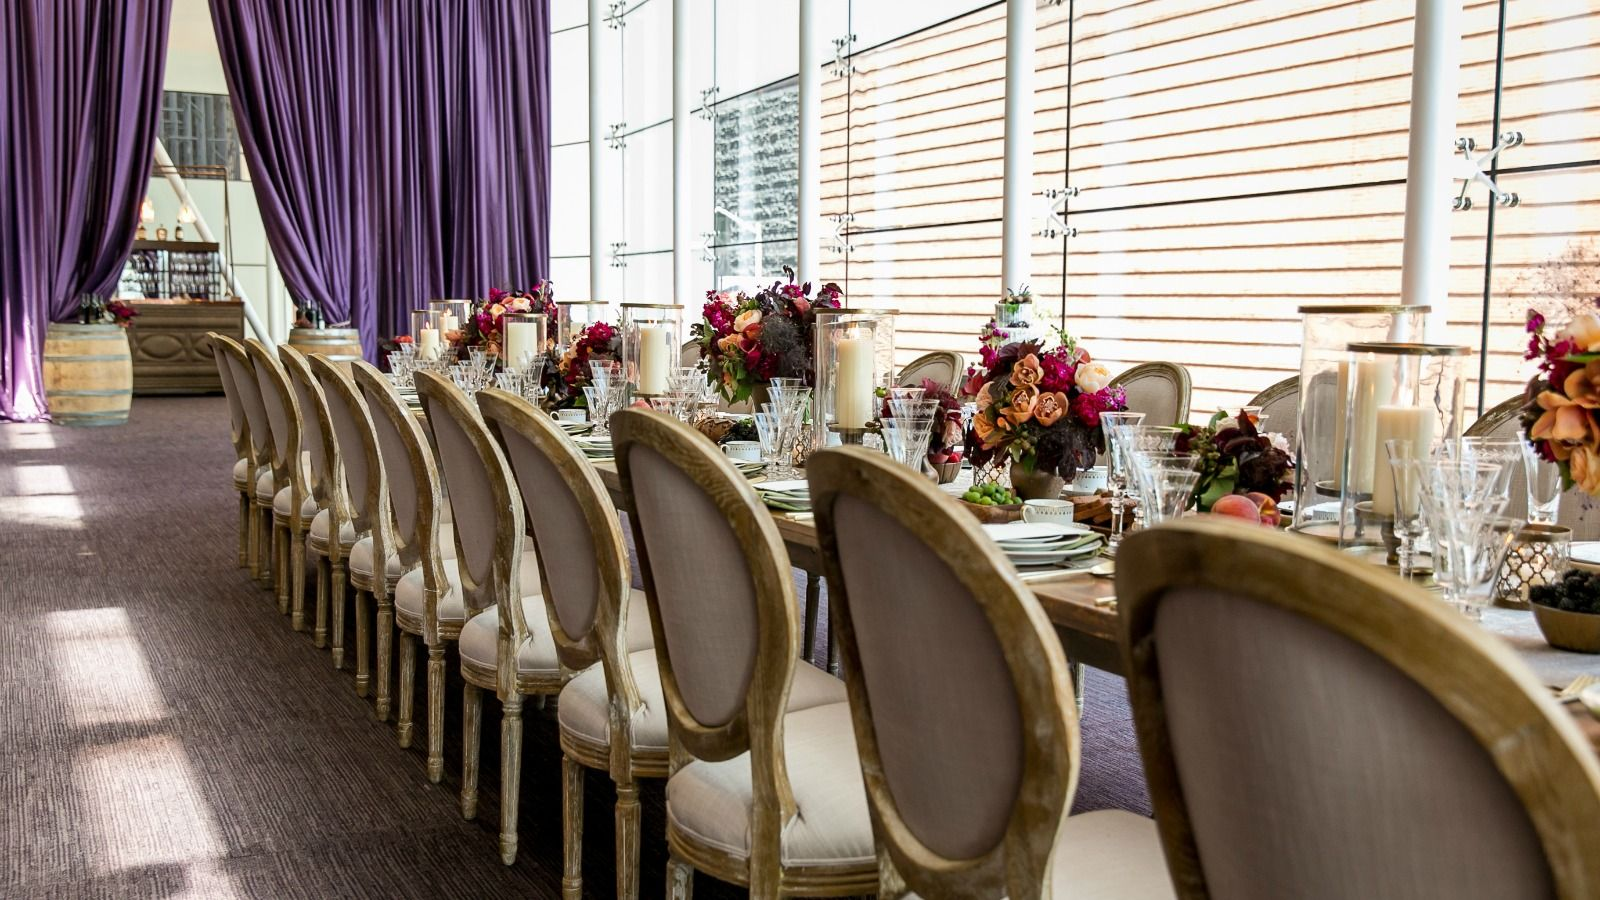 A long dining table perfectly laid out inside The St. Regis San Francisco wedding venue